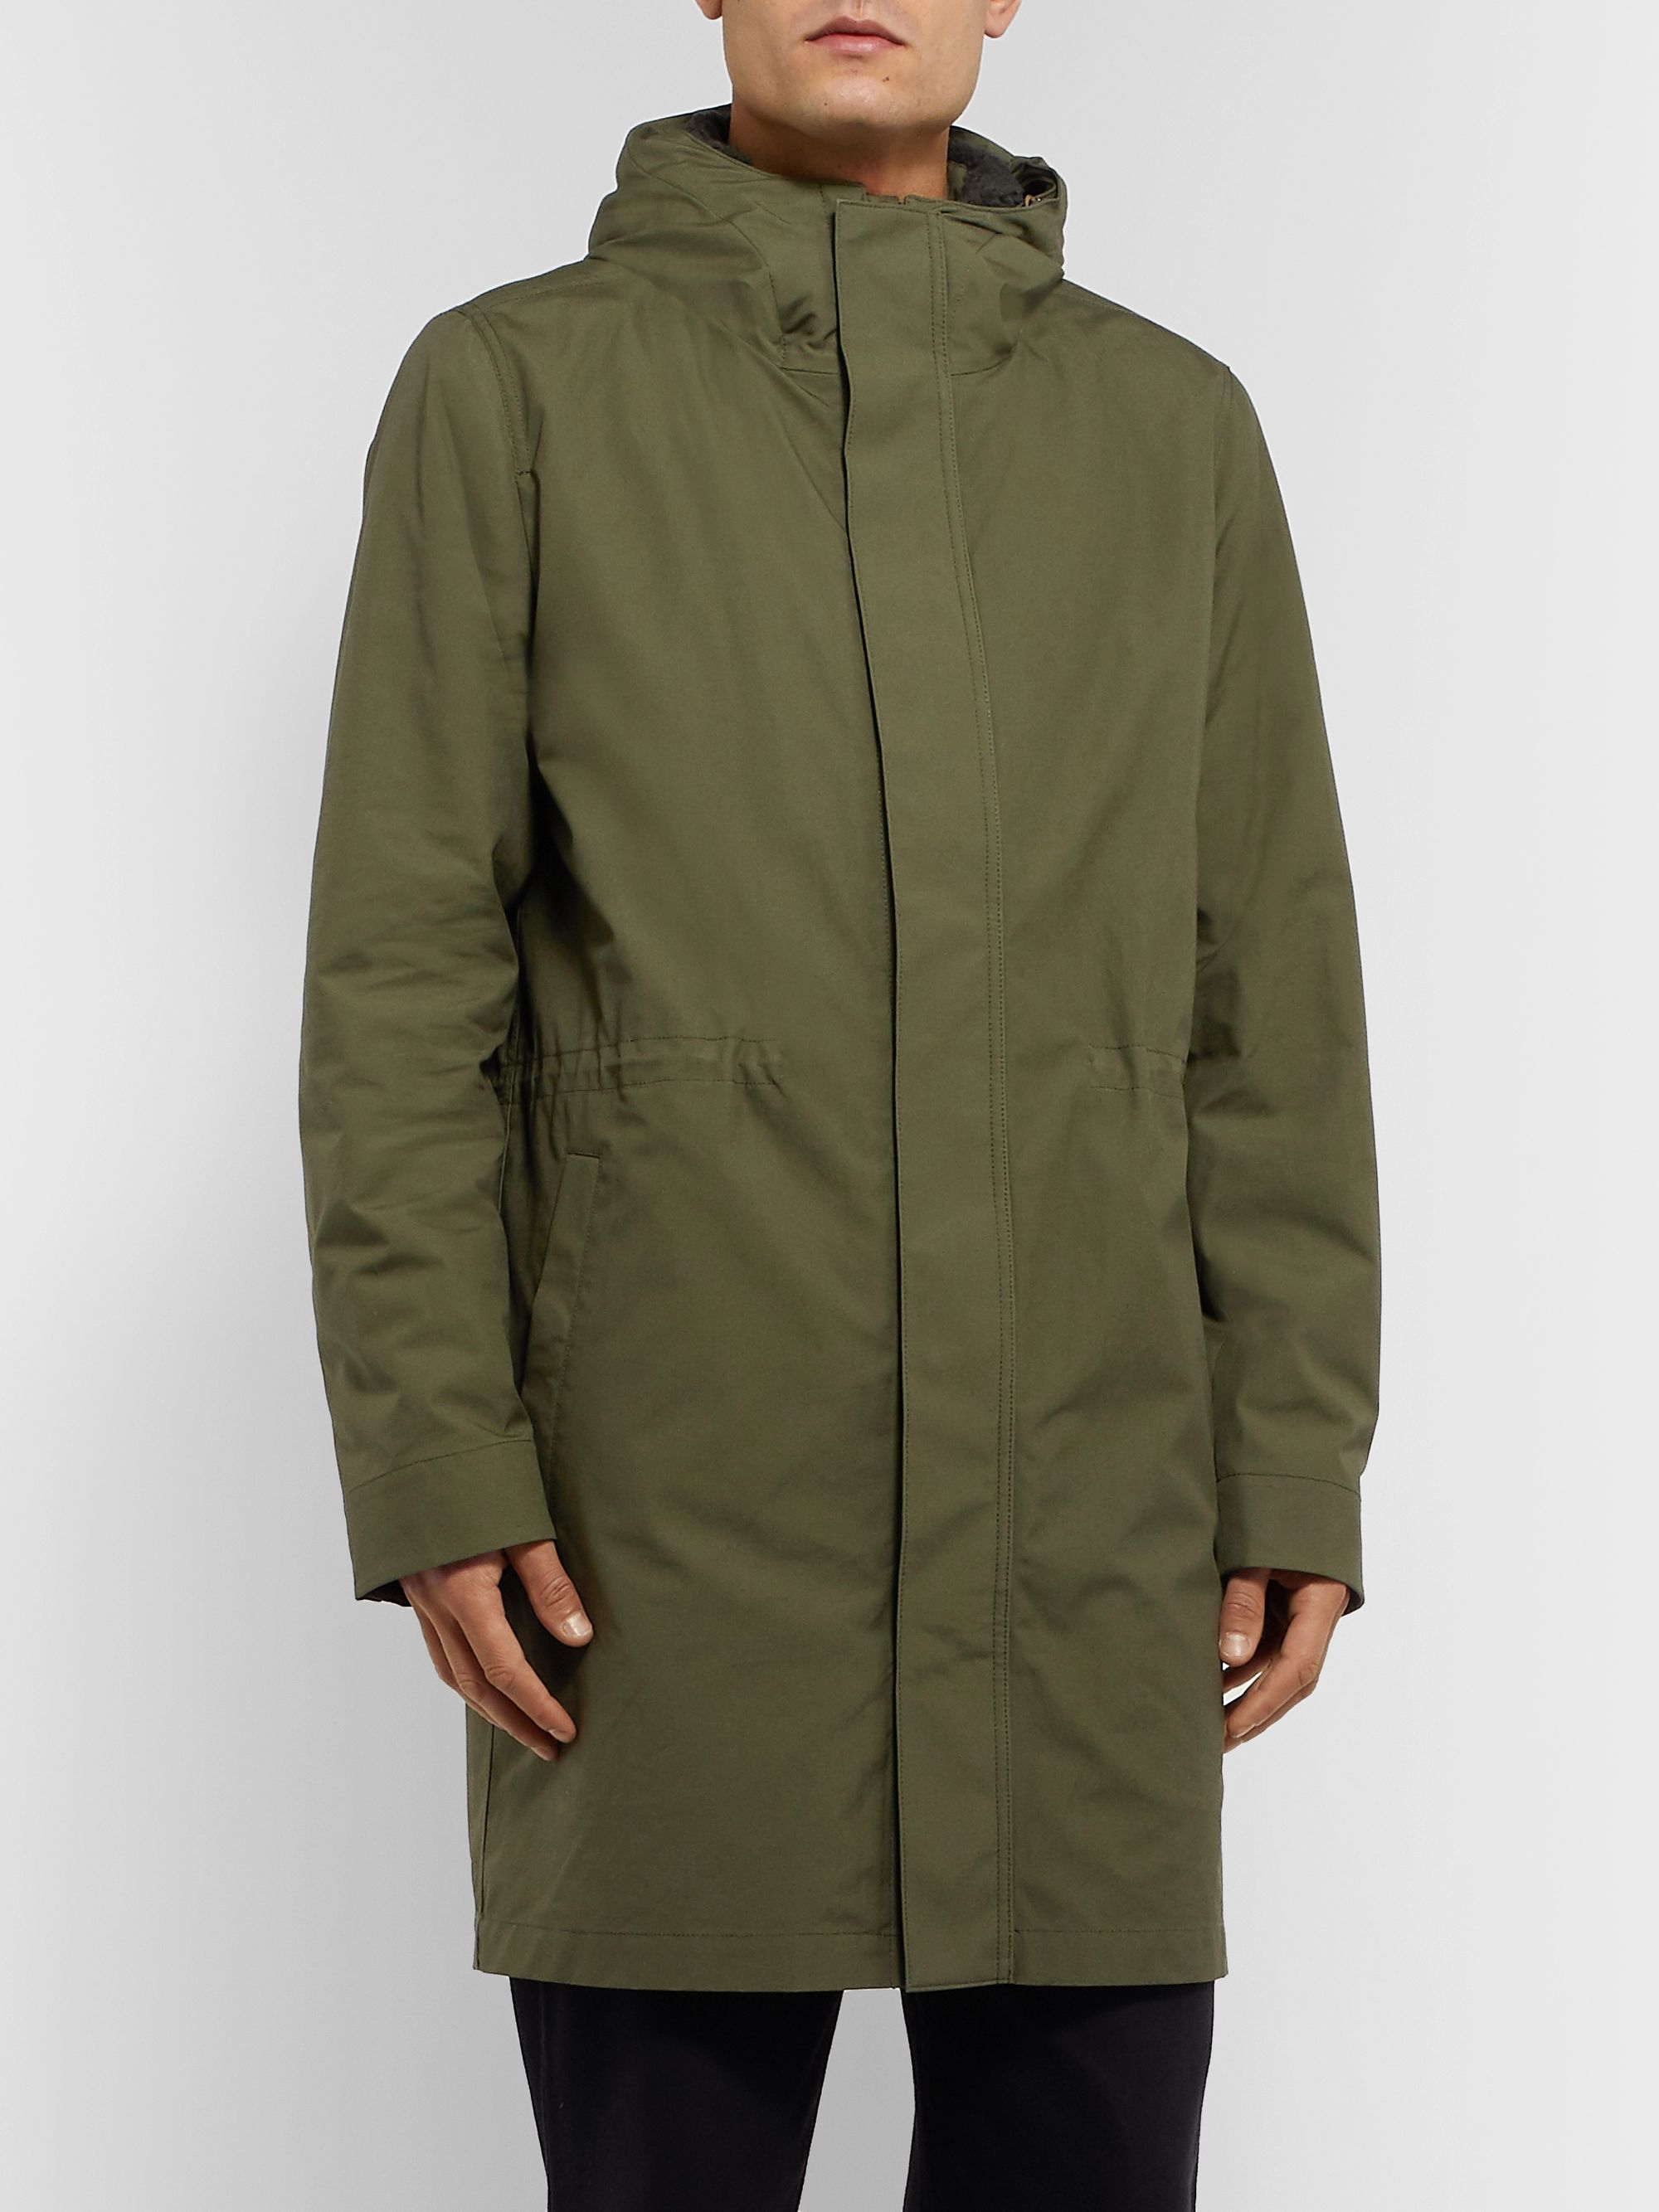 Norse Projects Elias Cambric Cotton Hooded Parka With Detachable Fleece Liner